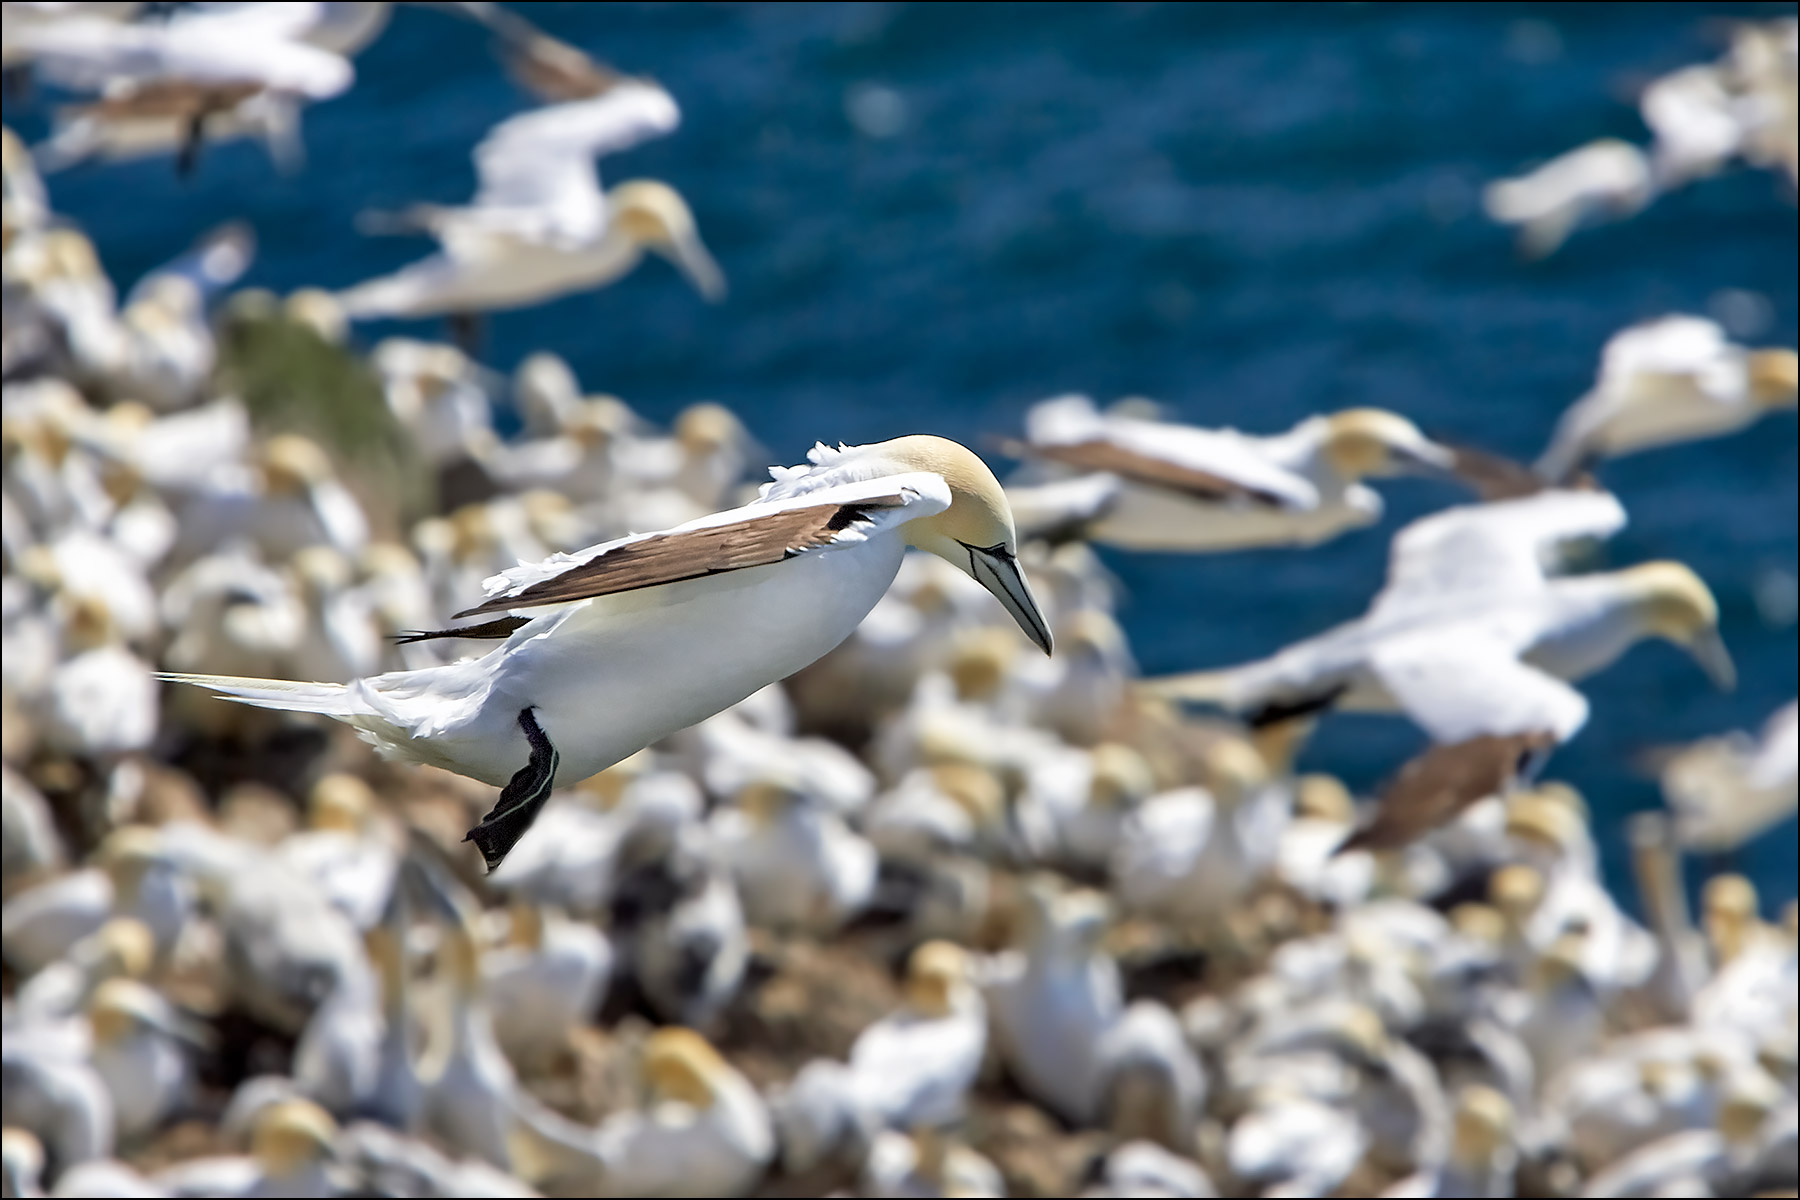 Northern Gannet, Cape St. Mary's Ecological Reserve